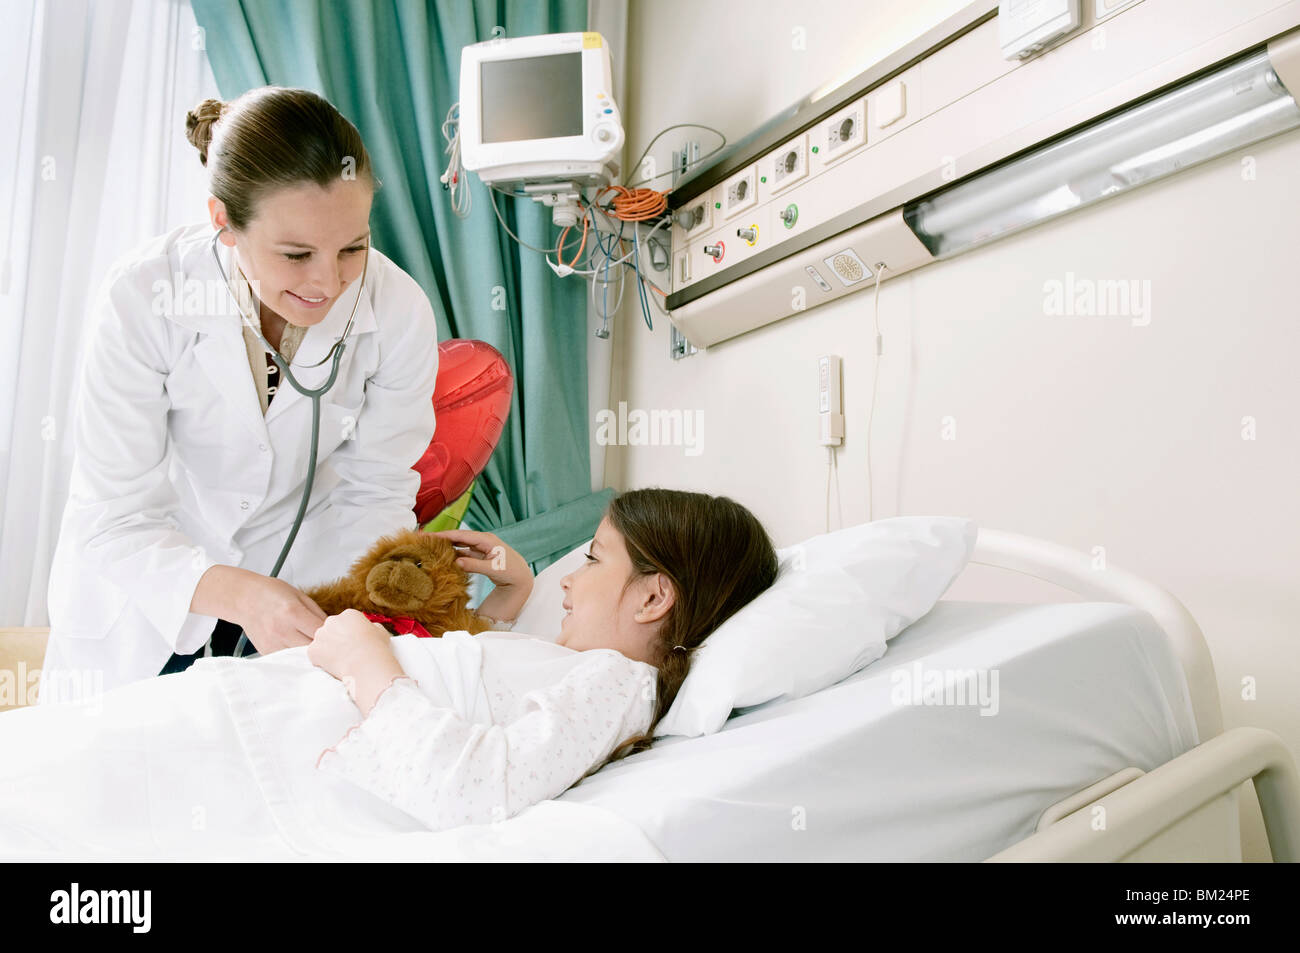 Girl on a hospital bed being examined by a female doctor - Stock Image